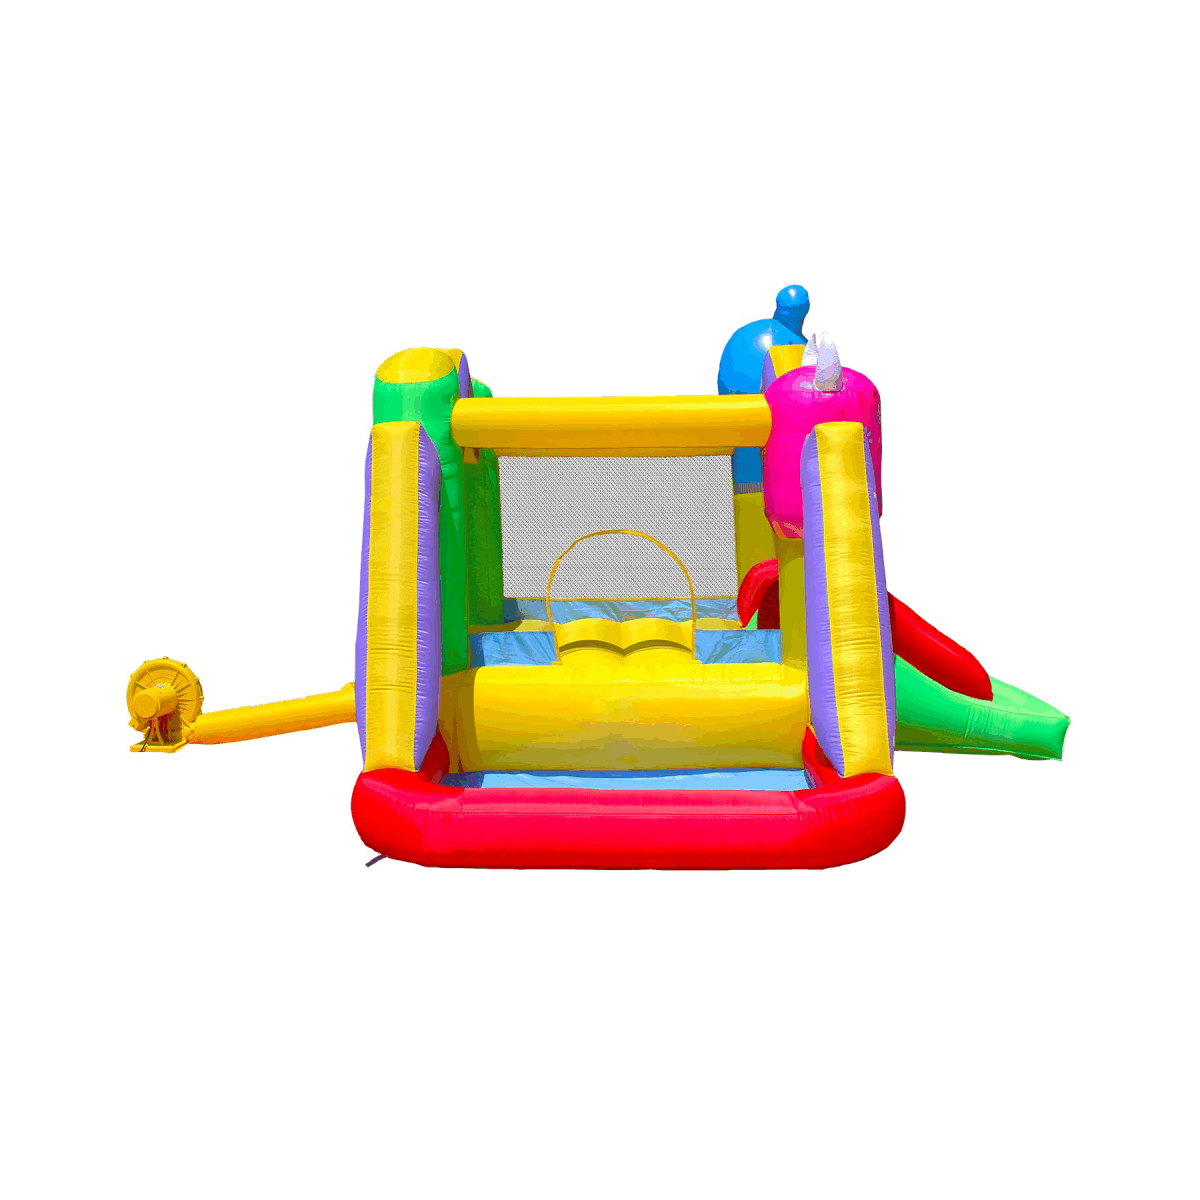 Monster Inflatable Bouncy Castle with Ball Pit - For Outdoor Fun!